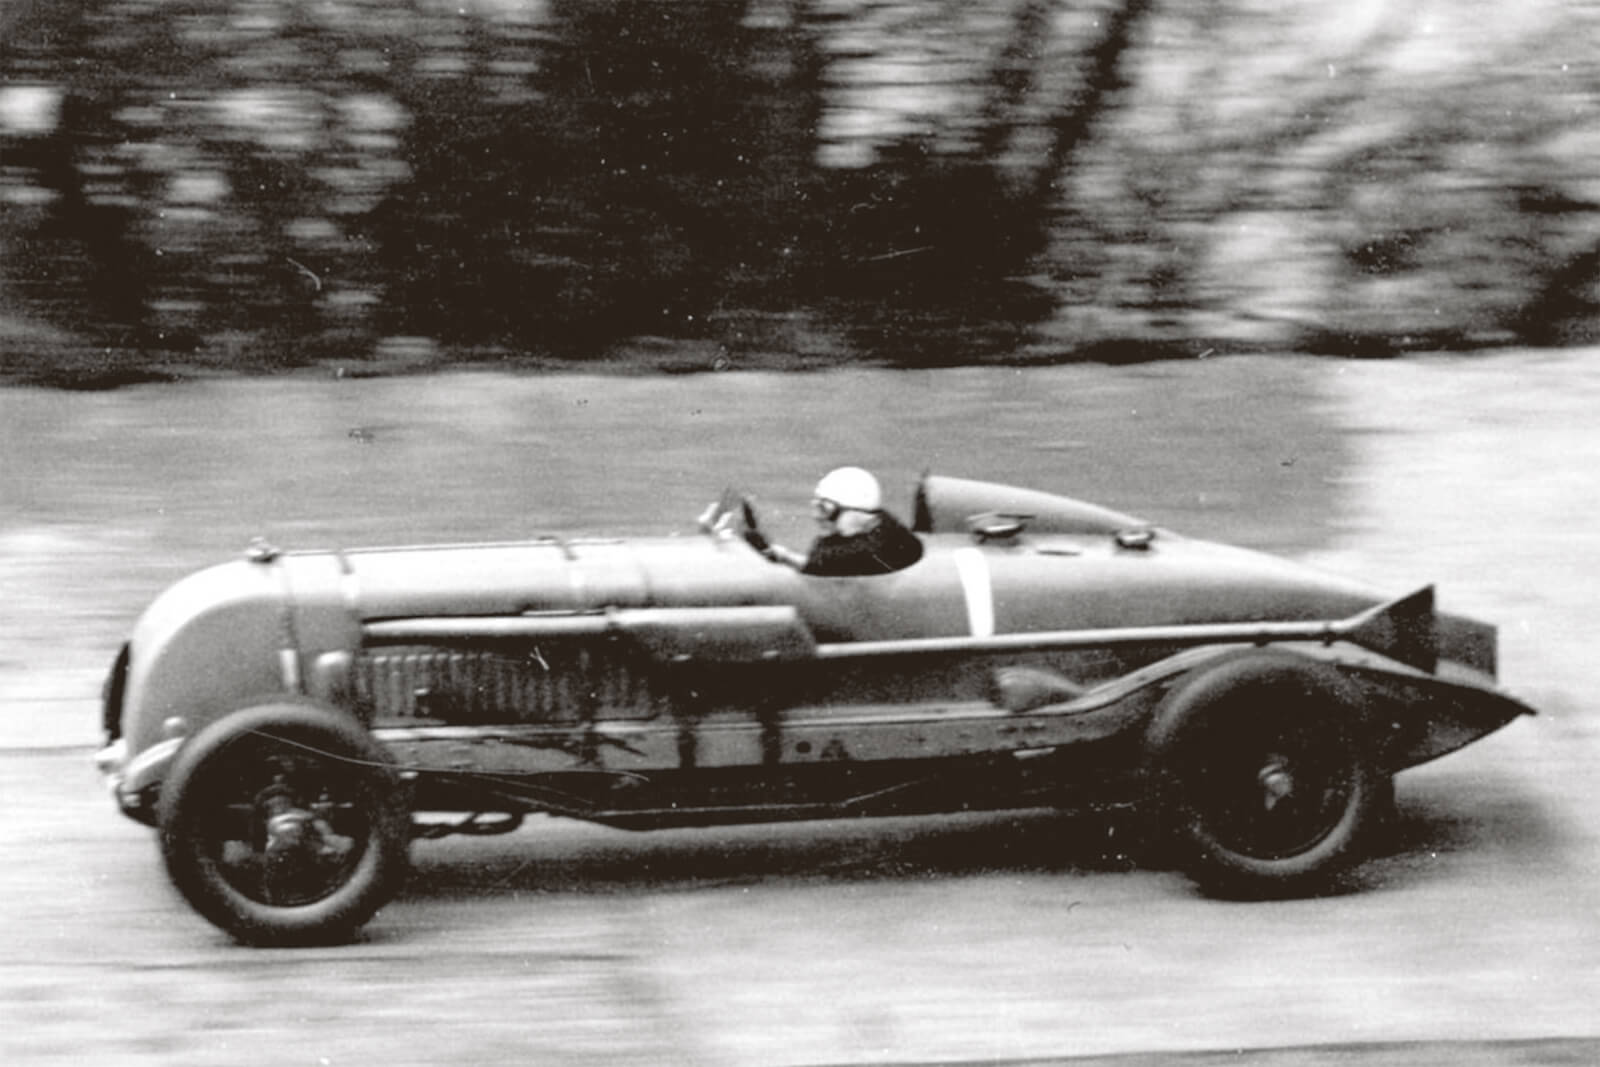 1929-31 4.5 litre supercharged 'Blower' Bentley Single-Seater